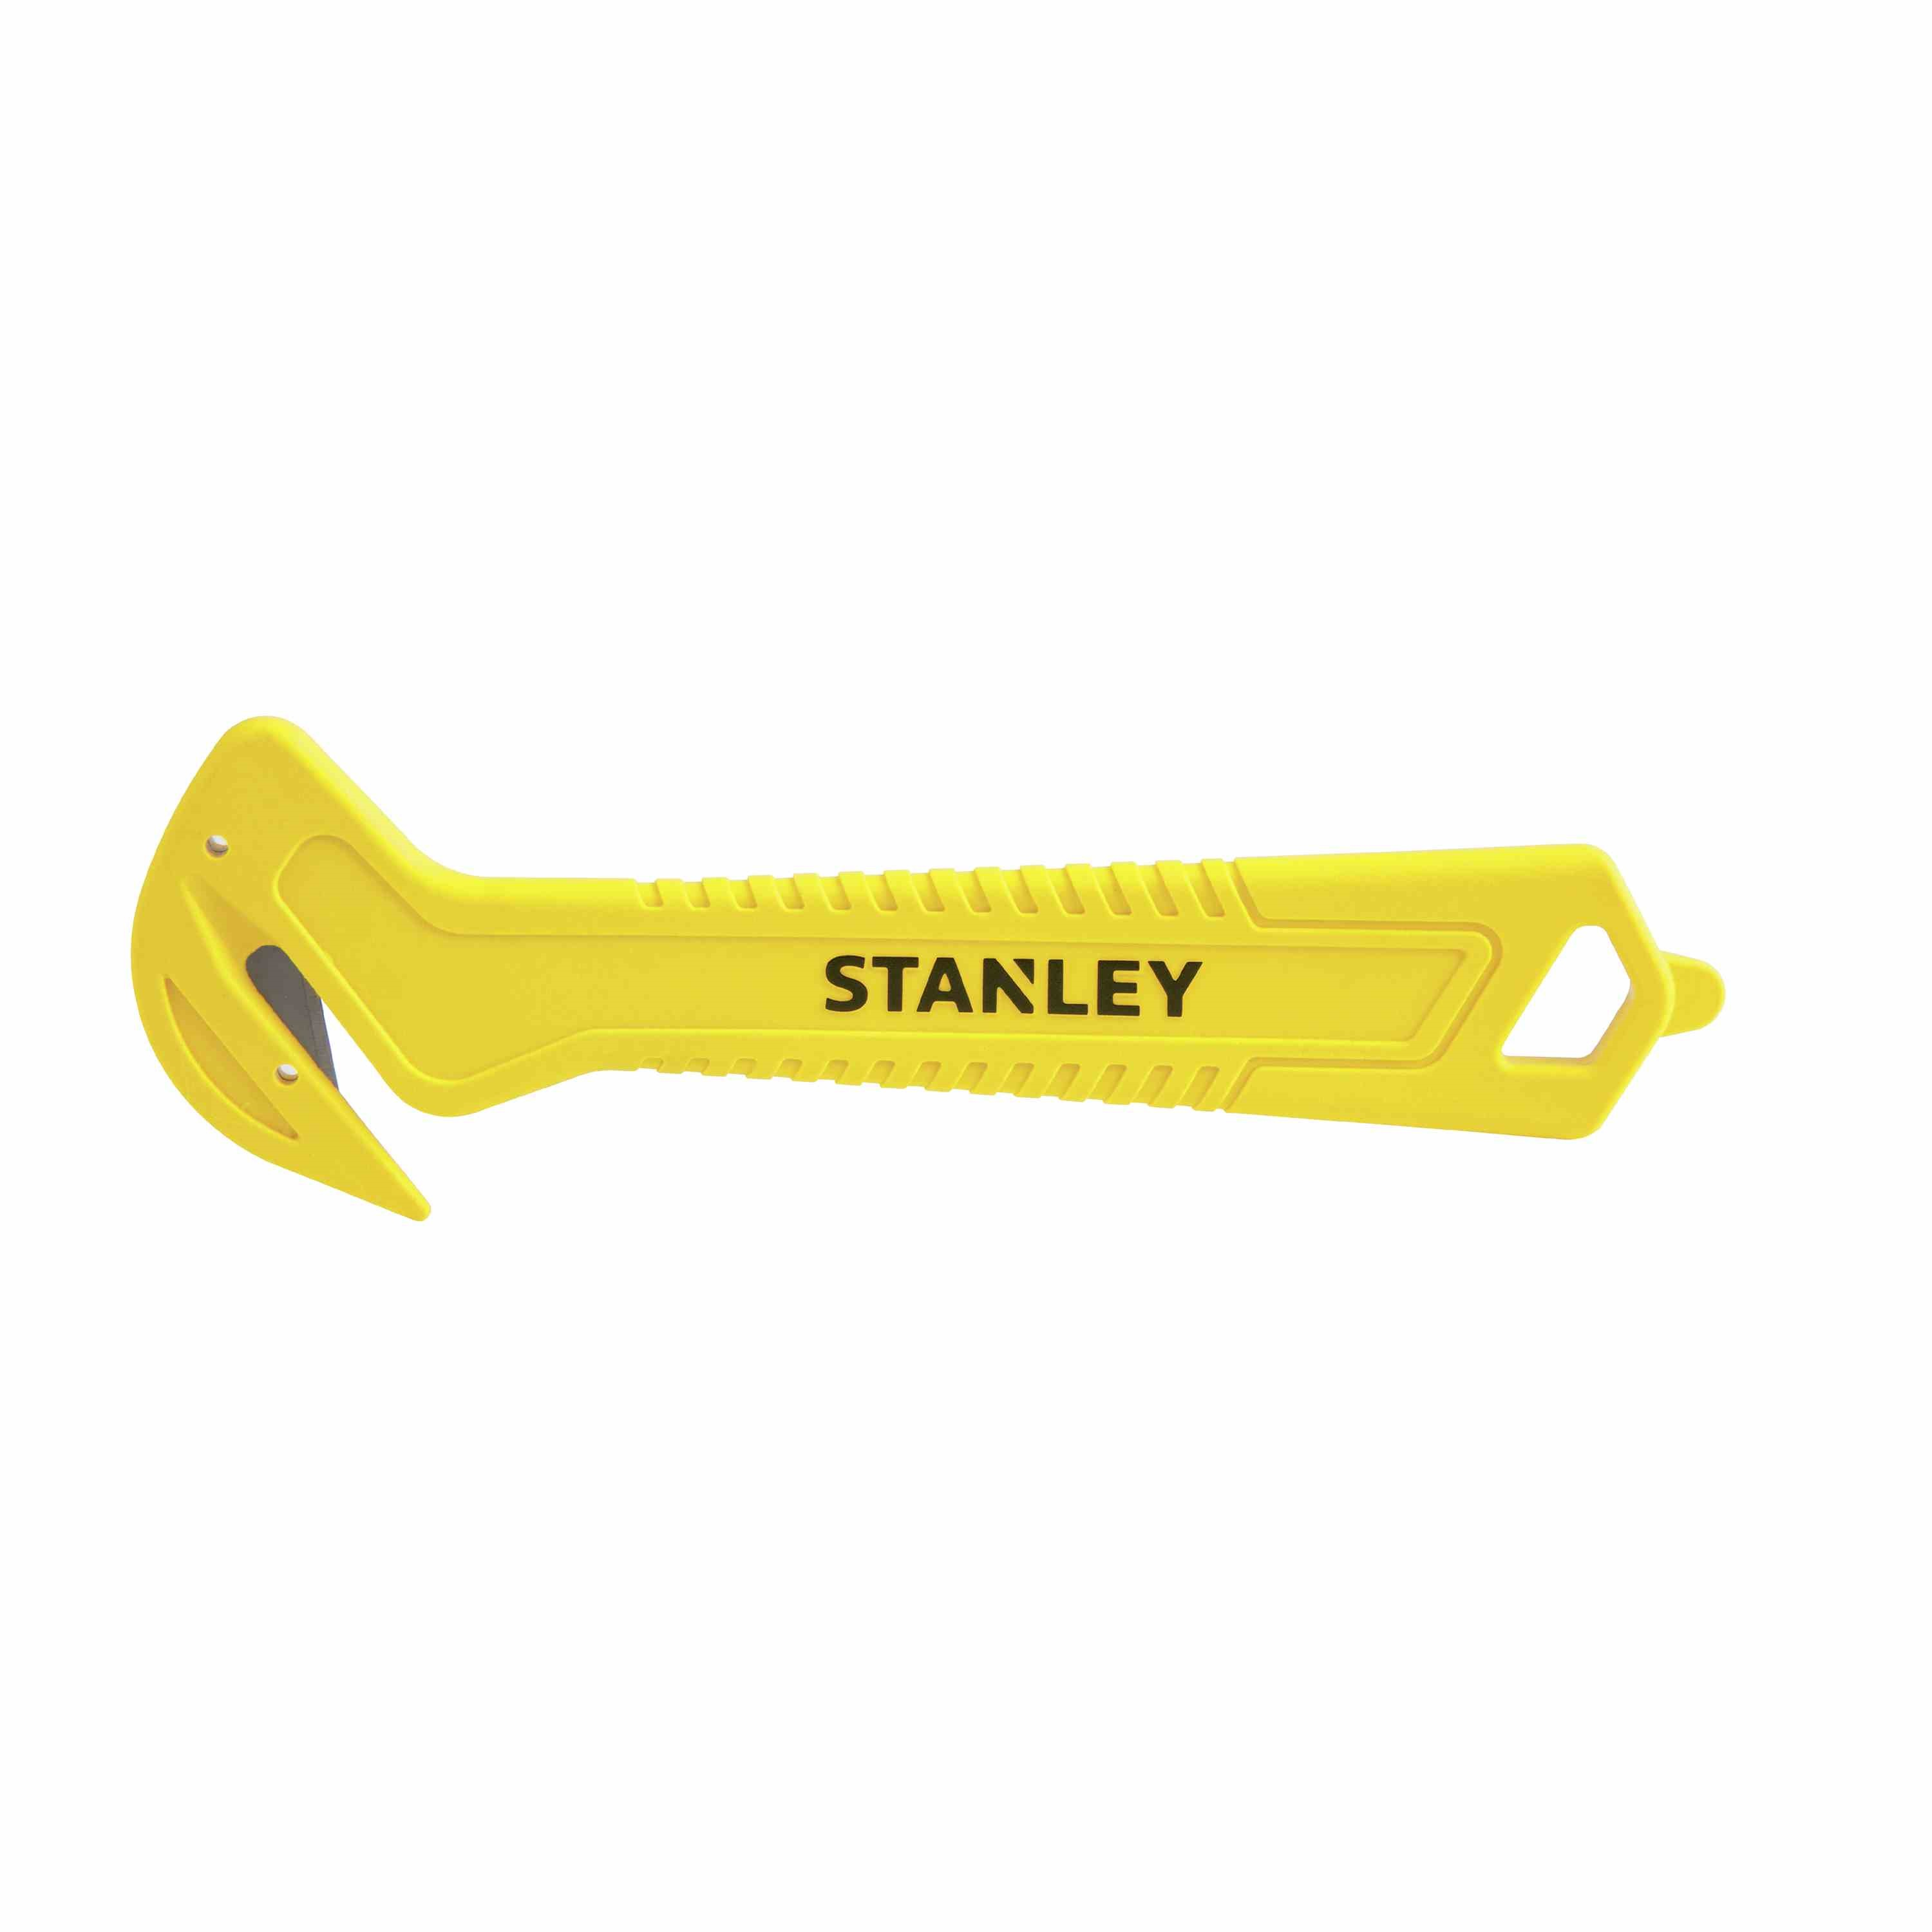 Stanley Tools - SingleSided Pull Cutter  100 pack - STHT10355B